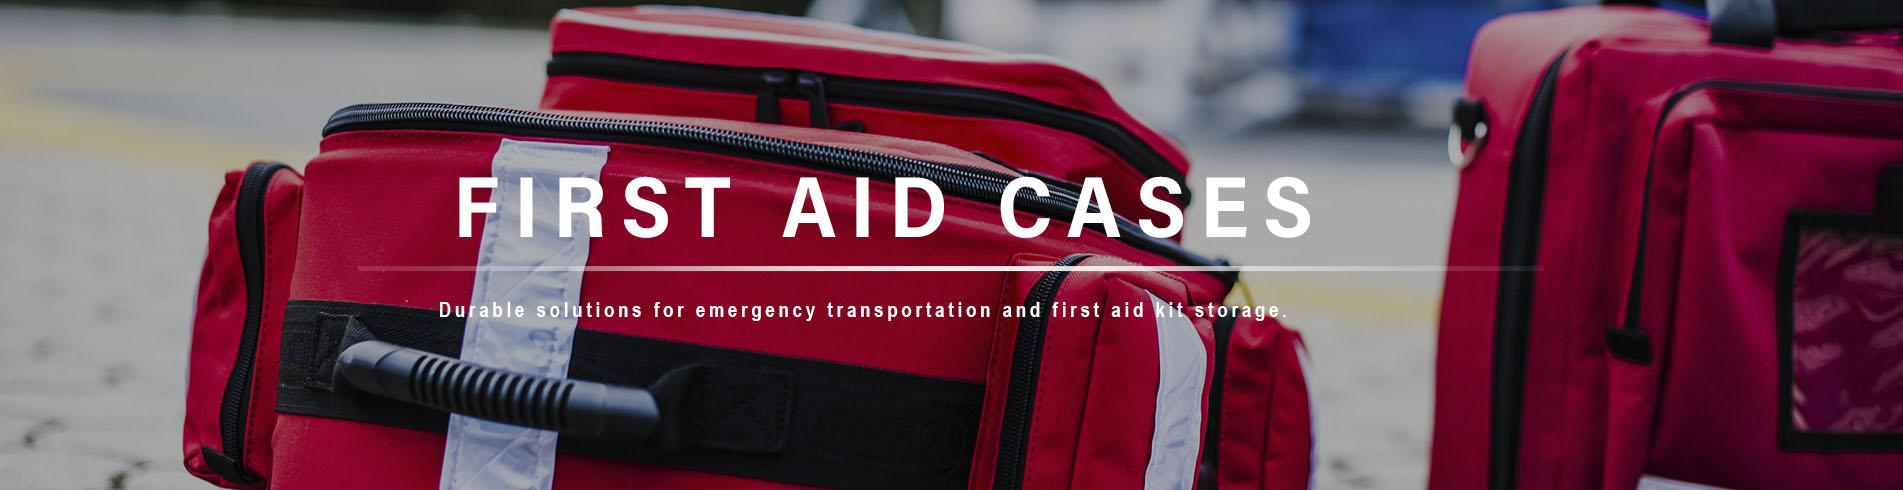 First Aid Cases